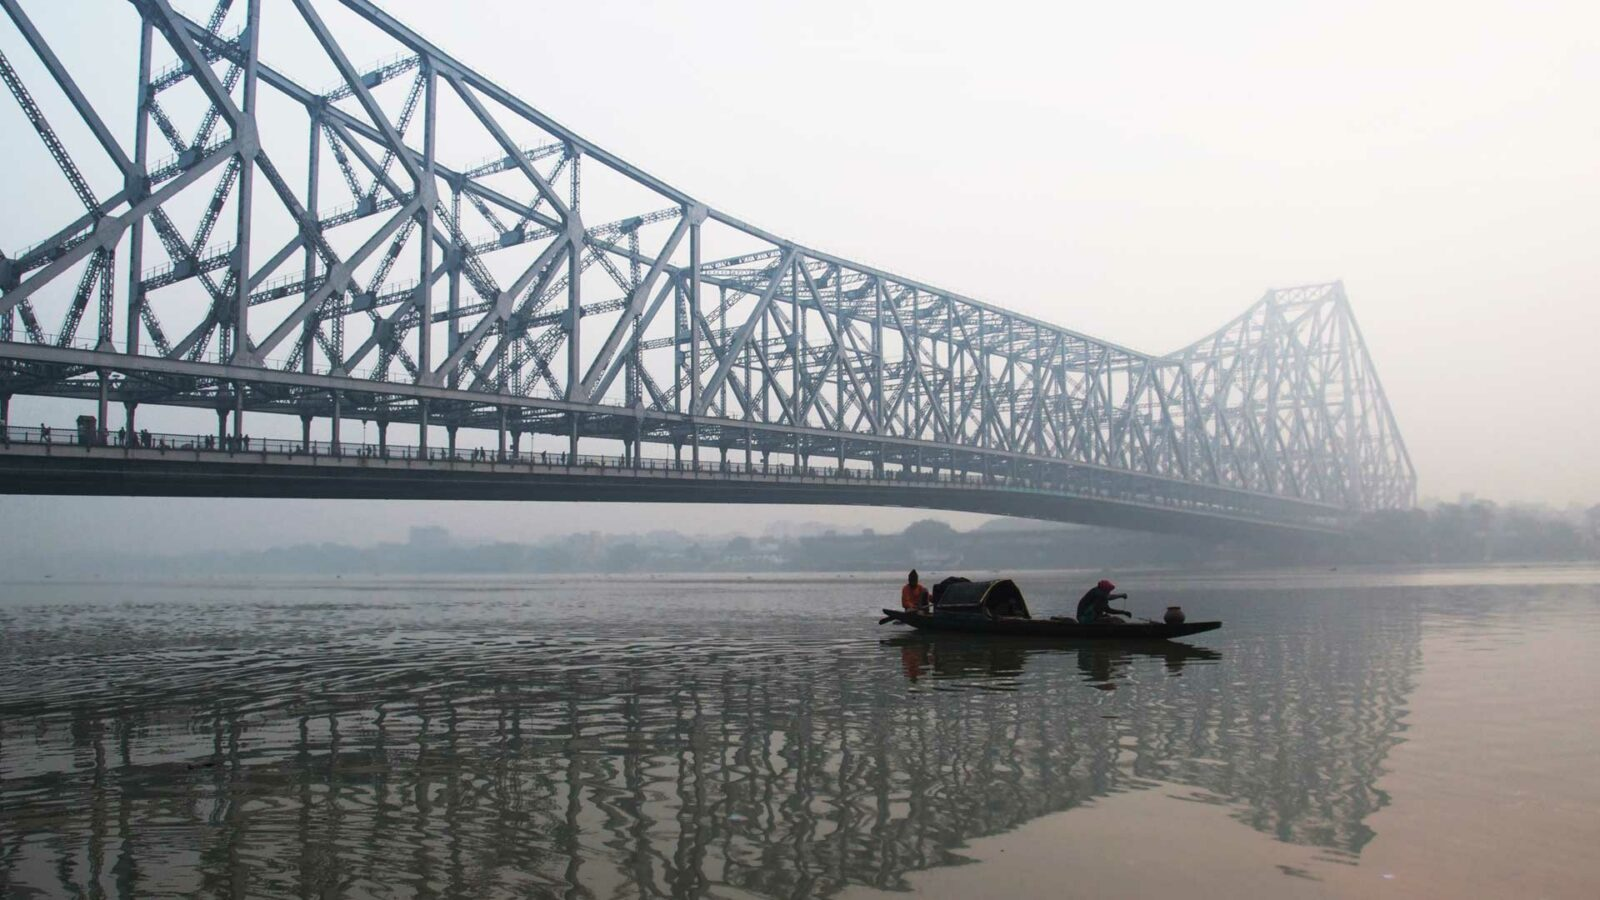 howrah-bridge-in-india-best-online-travel-blog-entertainments-saga